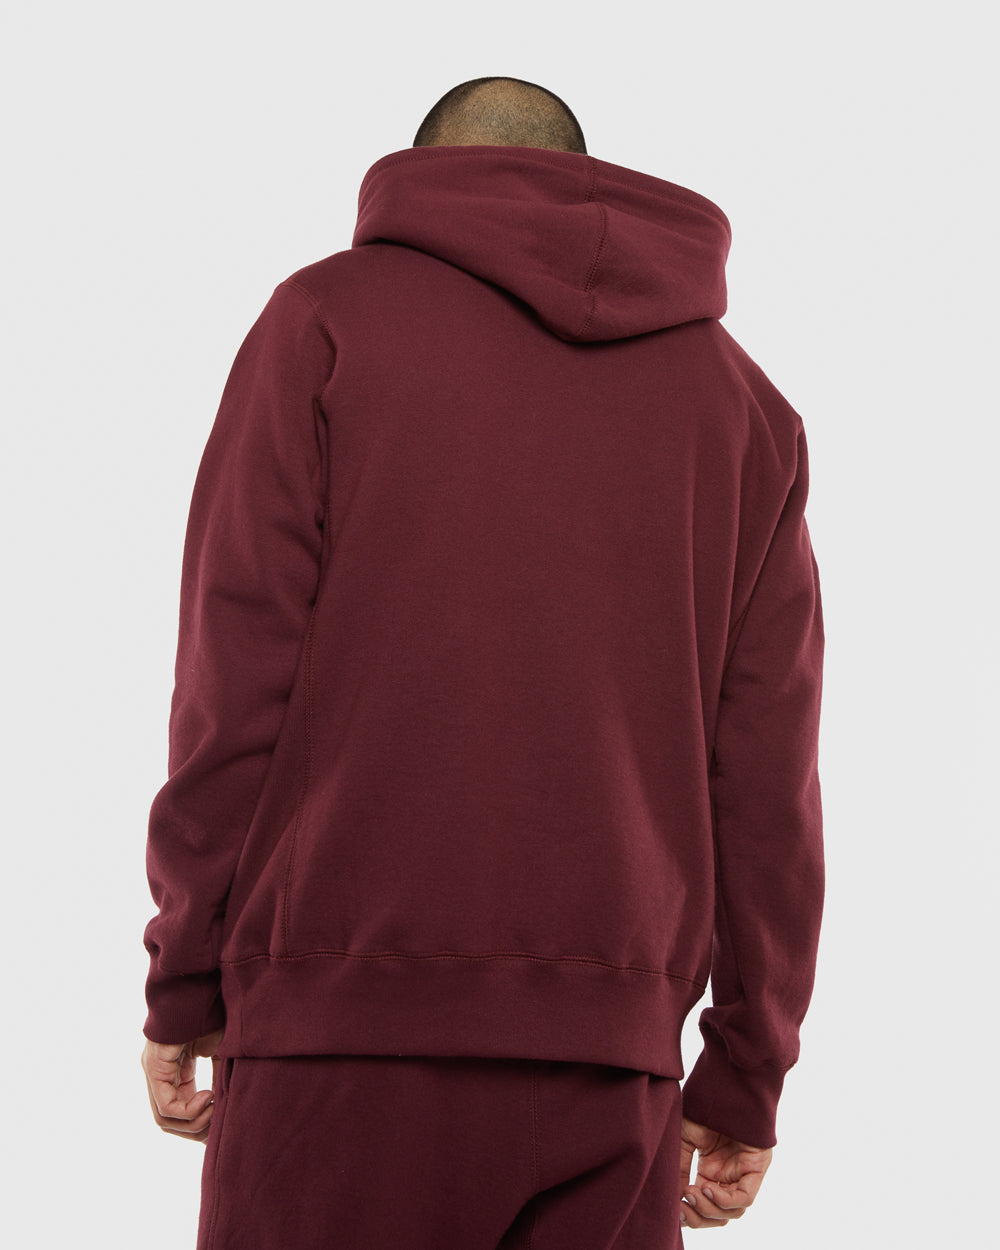 OVO TOURNAMENT HOODIE - BURGUNDY